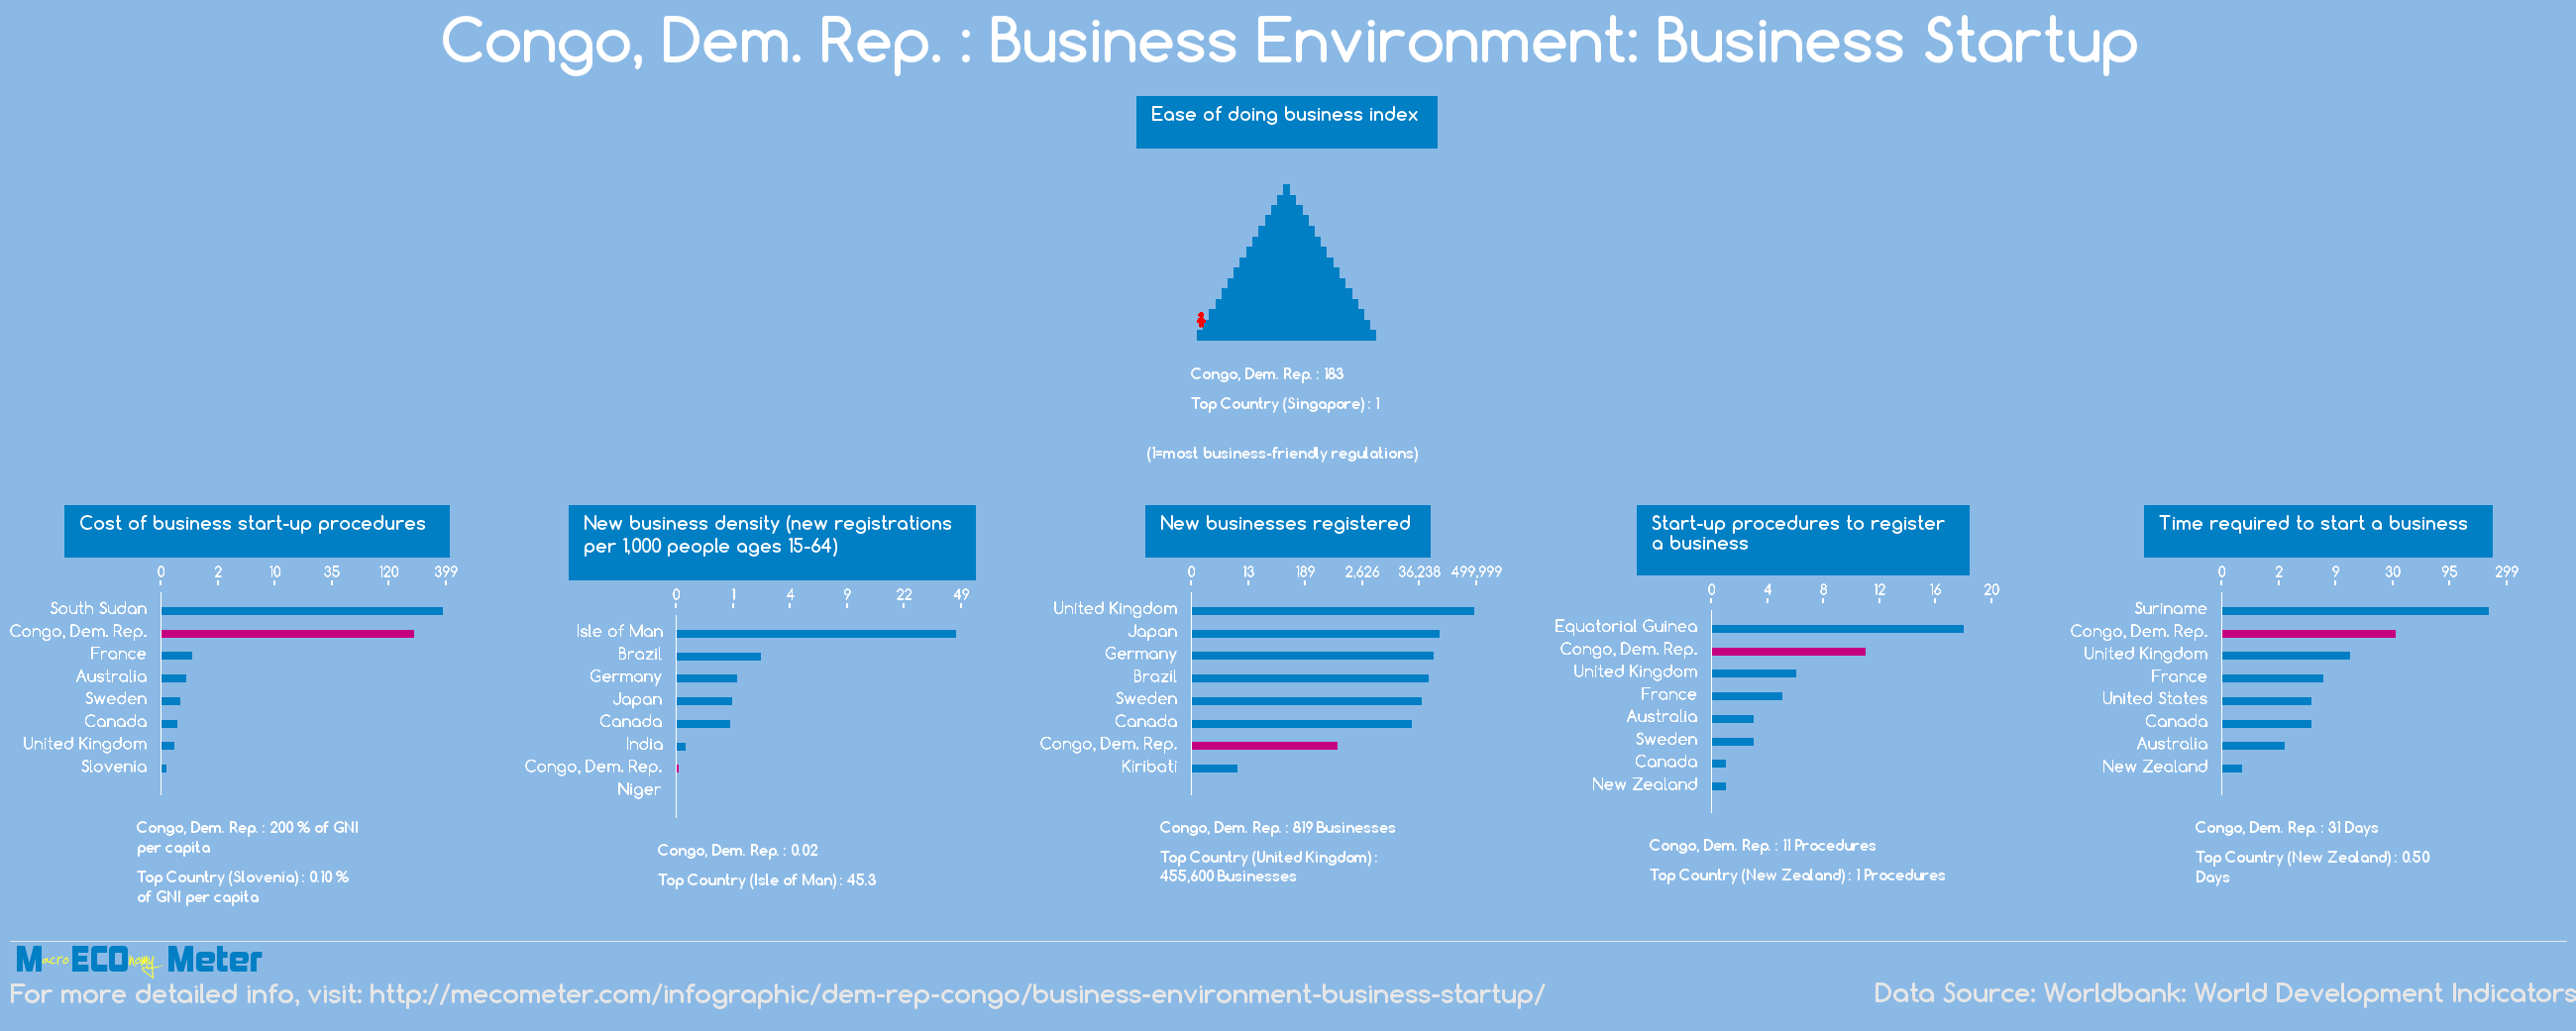 Congo, Dem. Rep. : Business Environment: Business Startup